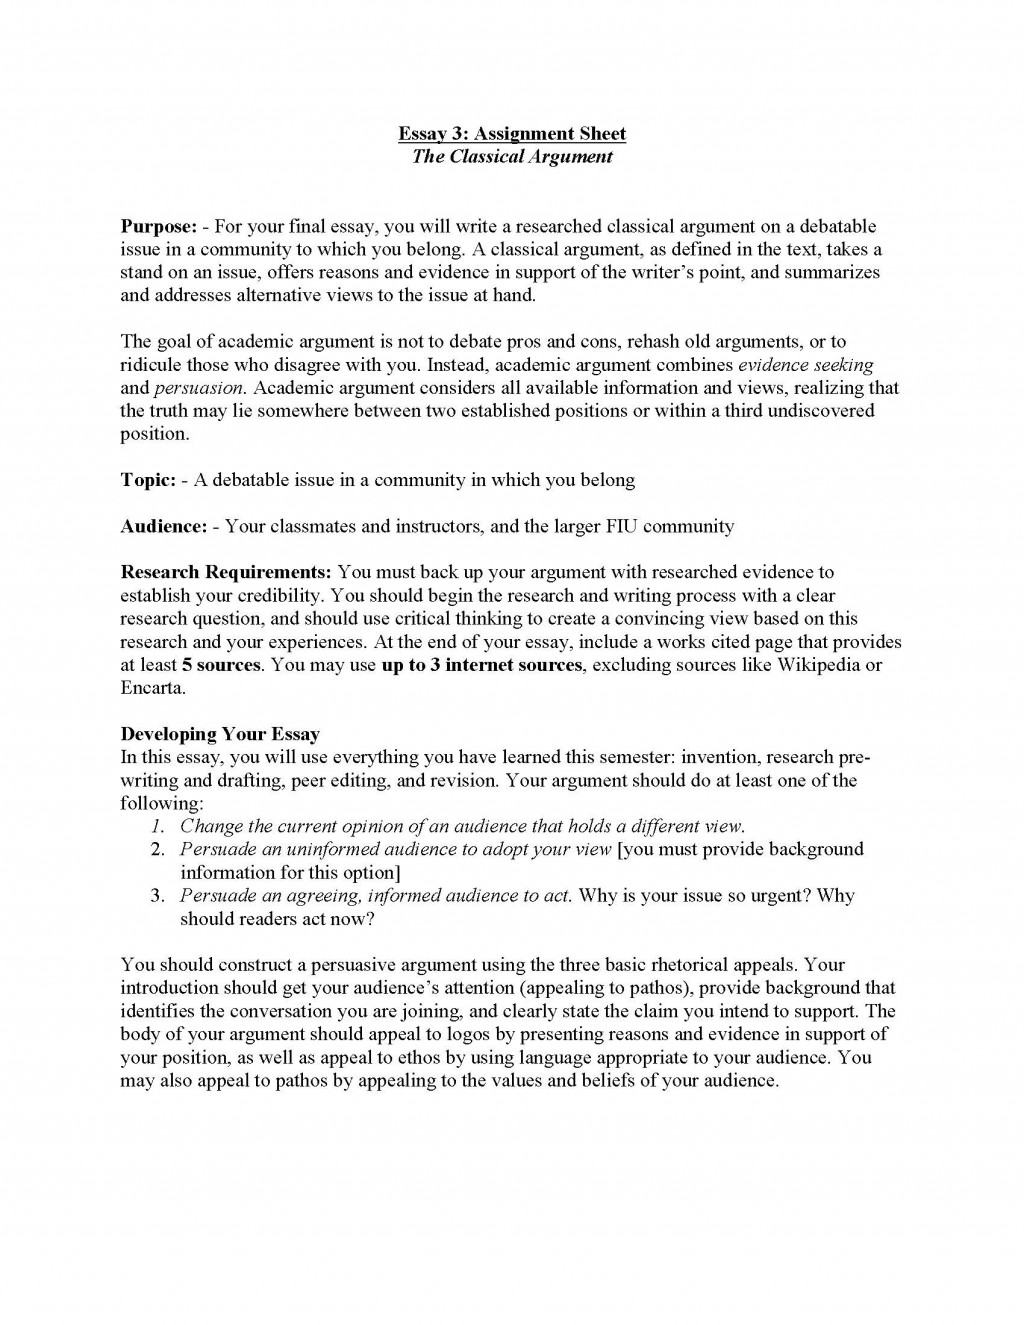 018 Essay Example Classical Argument Unit Assignment Page 1 Art Formidable Examples Conclusion School A2 Large